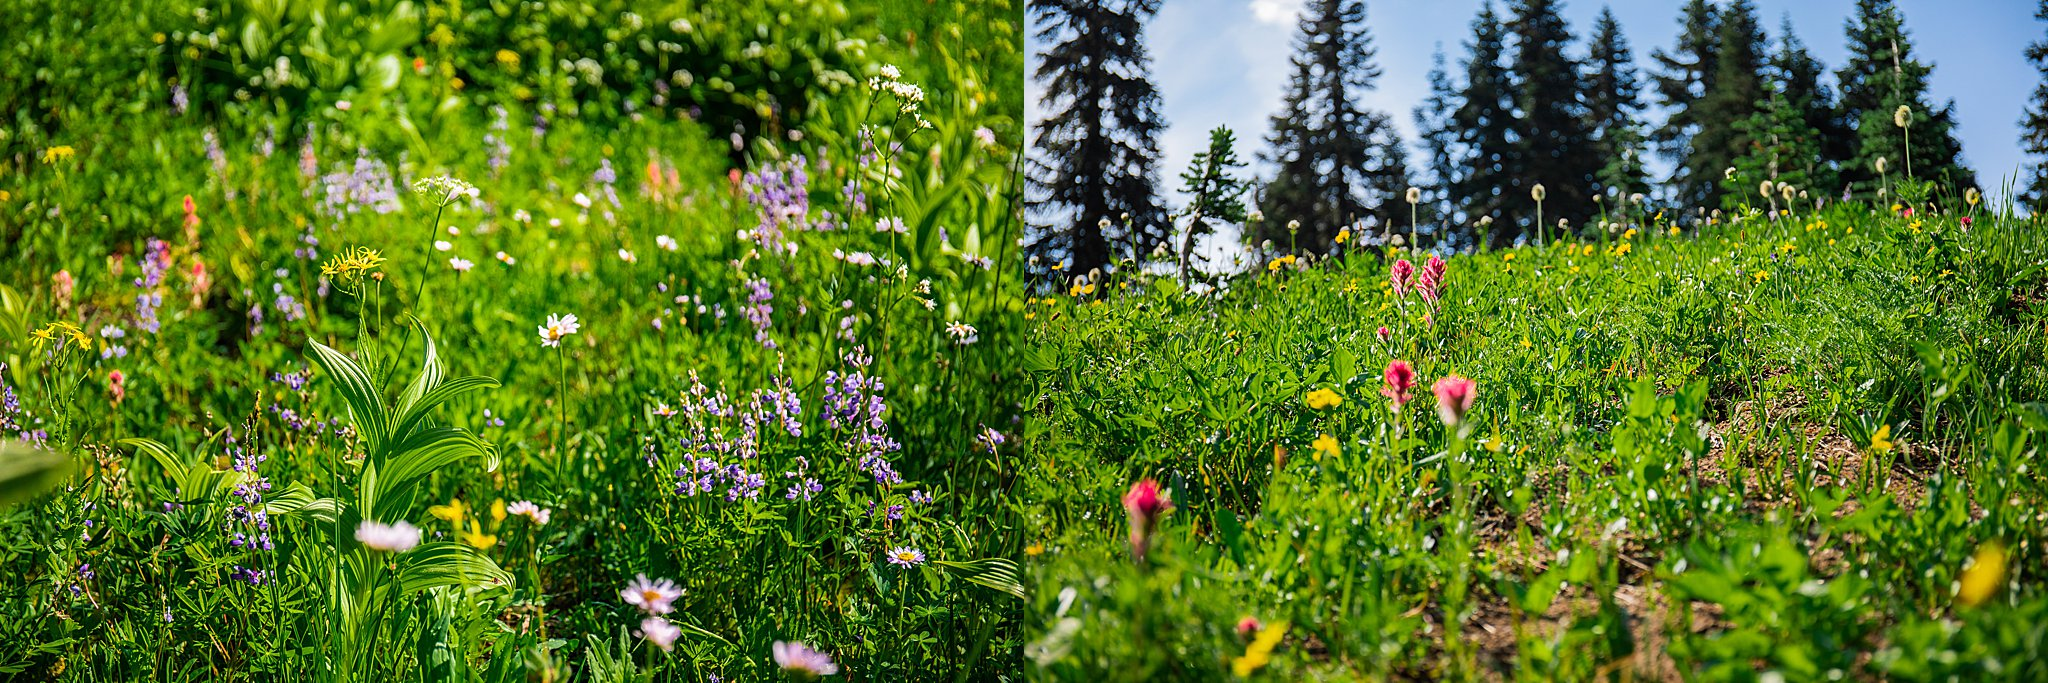 washington, naches peak loop, naches, pacific crest trail, national park, mount rainier, rainier, mount rainier national park, wildflowers, pacific northwest, summer hikes, chinook pass, tipsoo lake, 52 hike challenge